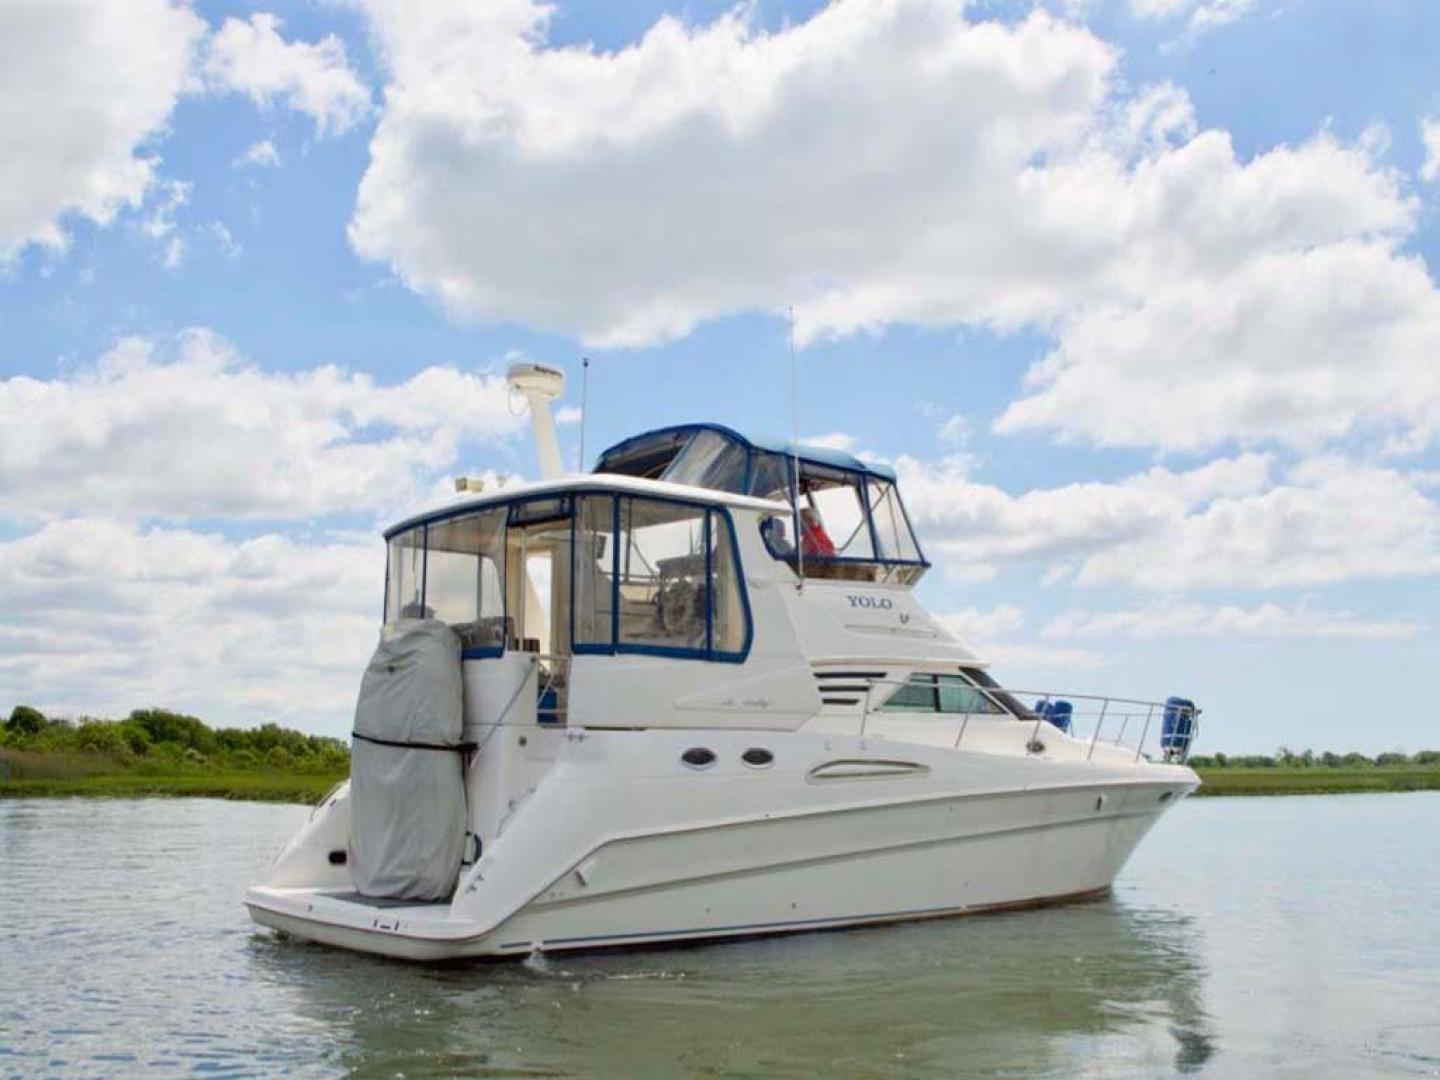 Sea-Ray-420-Aft-Cabin-2000-YOLO-Long-Island-New-York-United-States-Starboard-930310